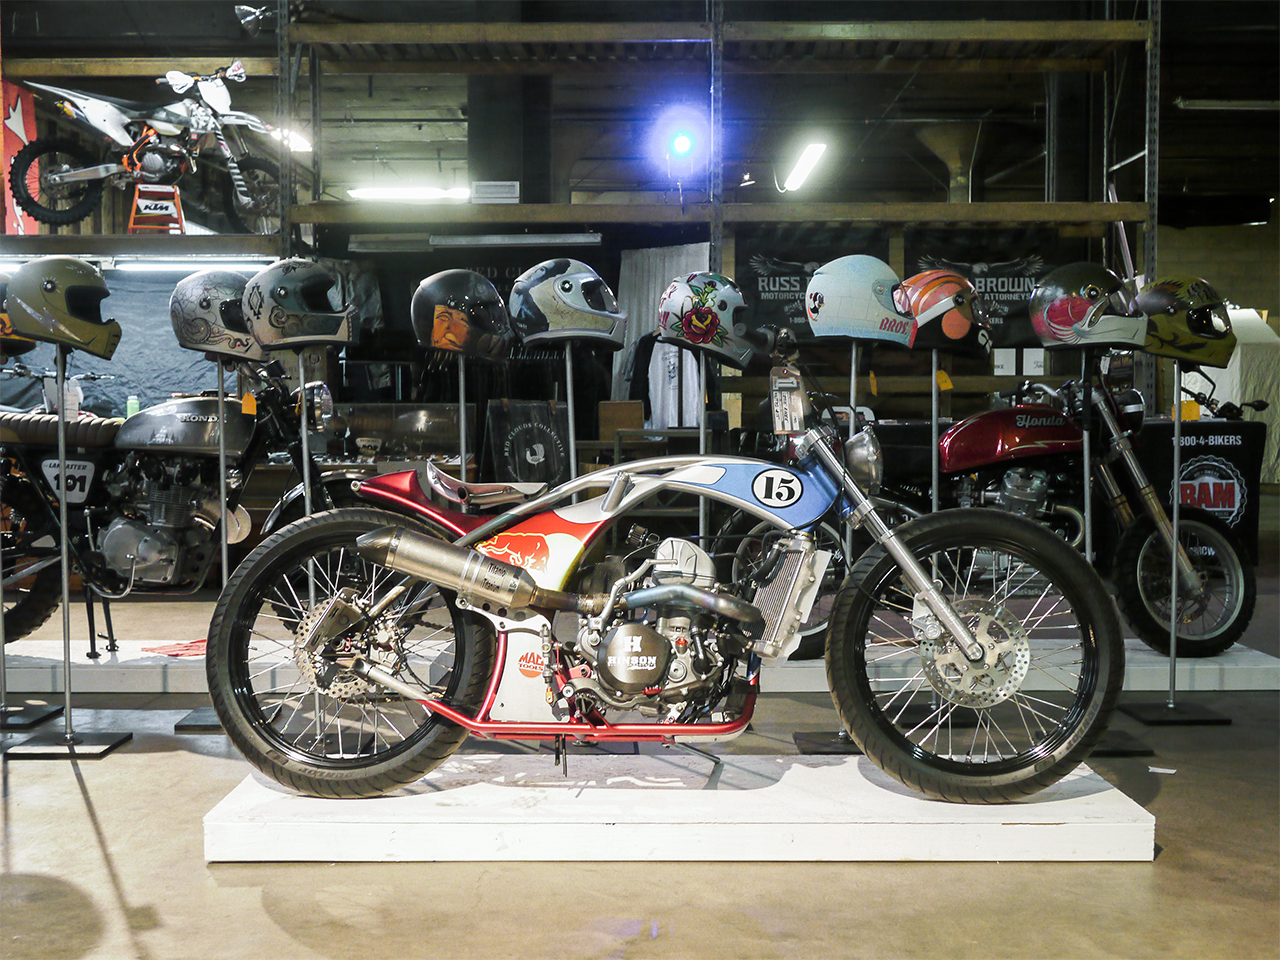 Rooke Customs' entry shines in all it glory. One of the first bikes you came across as you entered the One Moto show.